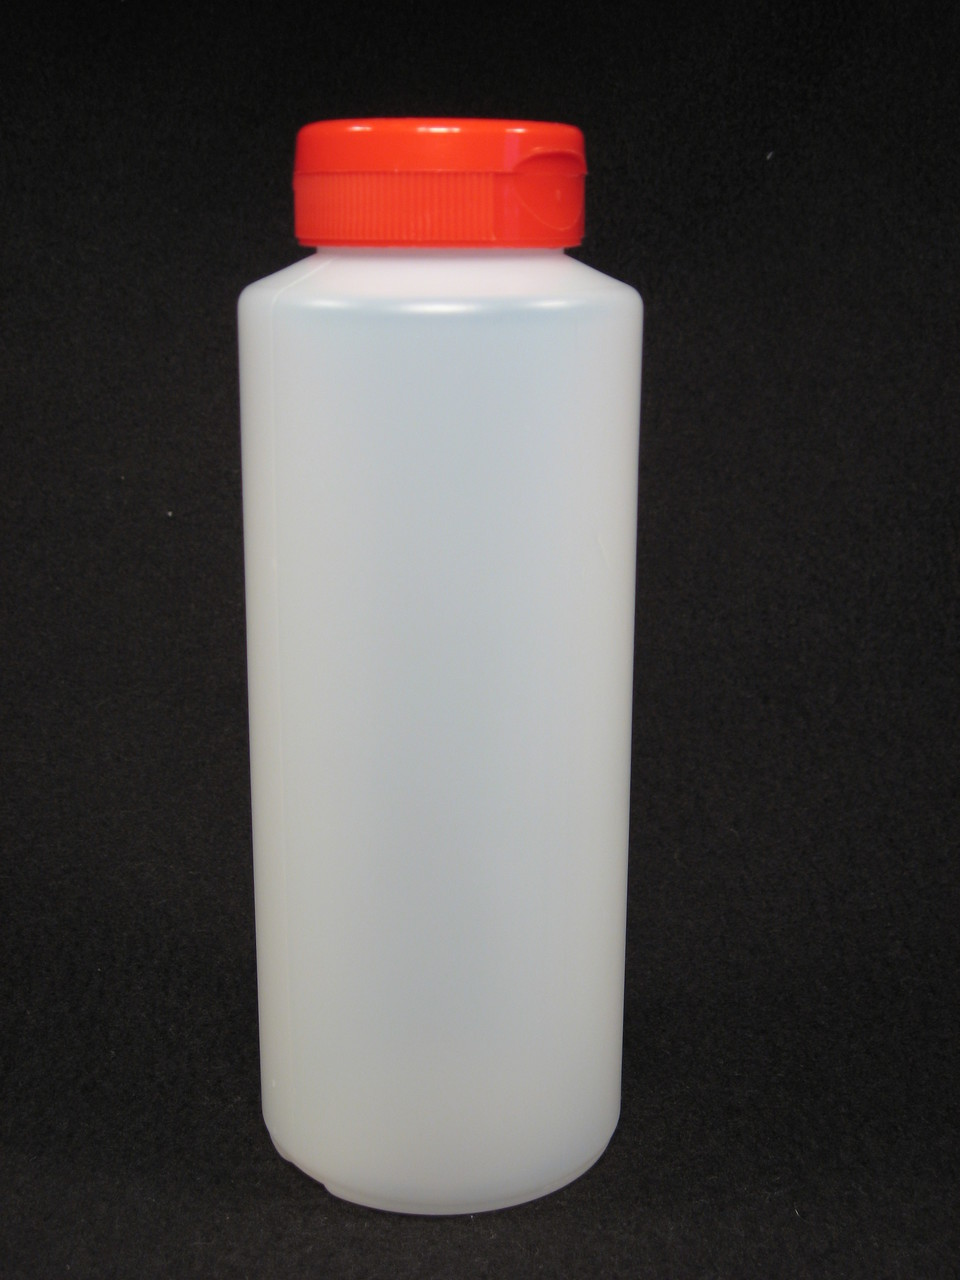 16 oz. Cylinder honey bottles - case of 300 with red flip top lids